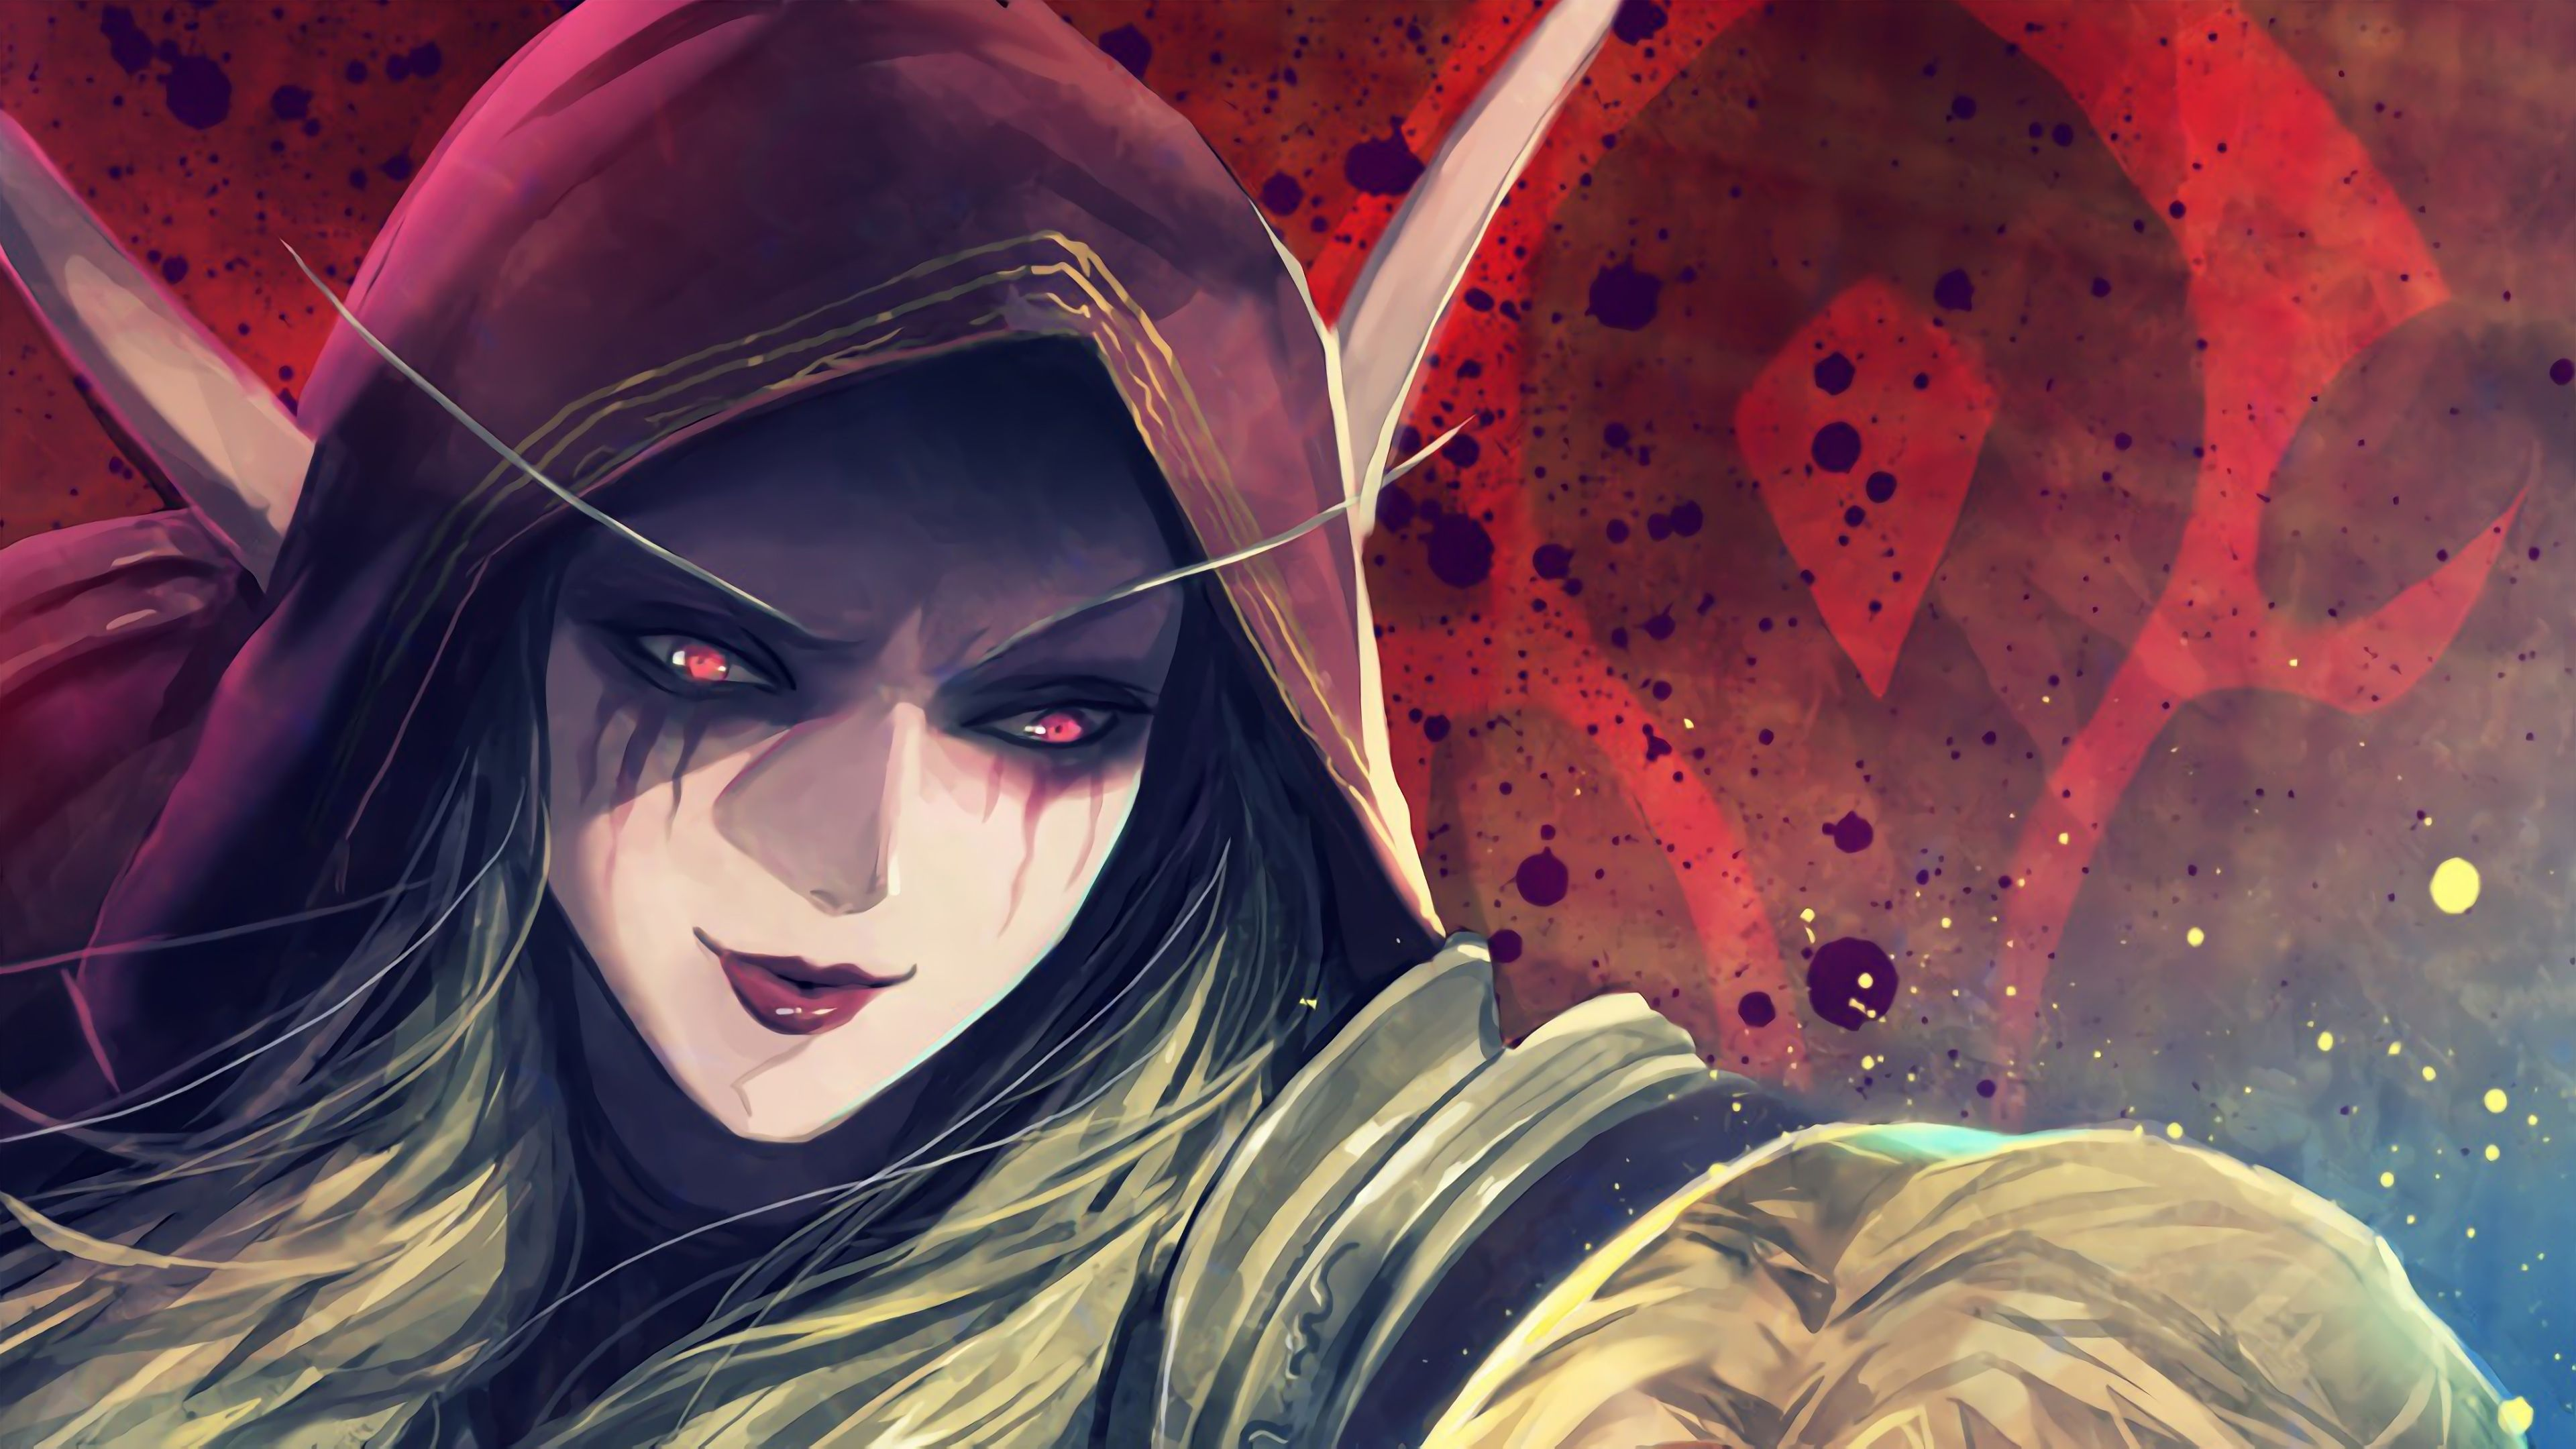 Sylvanas Windrunner Horde World Of Warcraft Battle For Azeroth Wow Video Game 3840x2160 Wallpaper Sylvanas Windrunner Warcraft World Of Warcraft